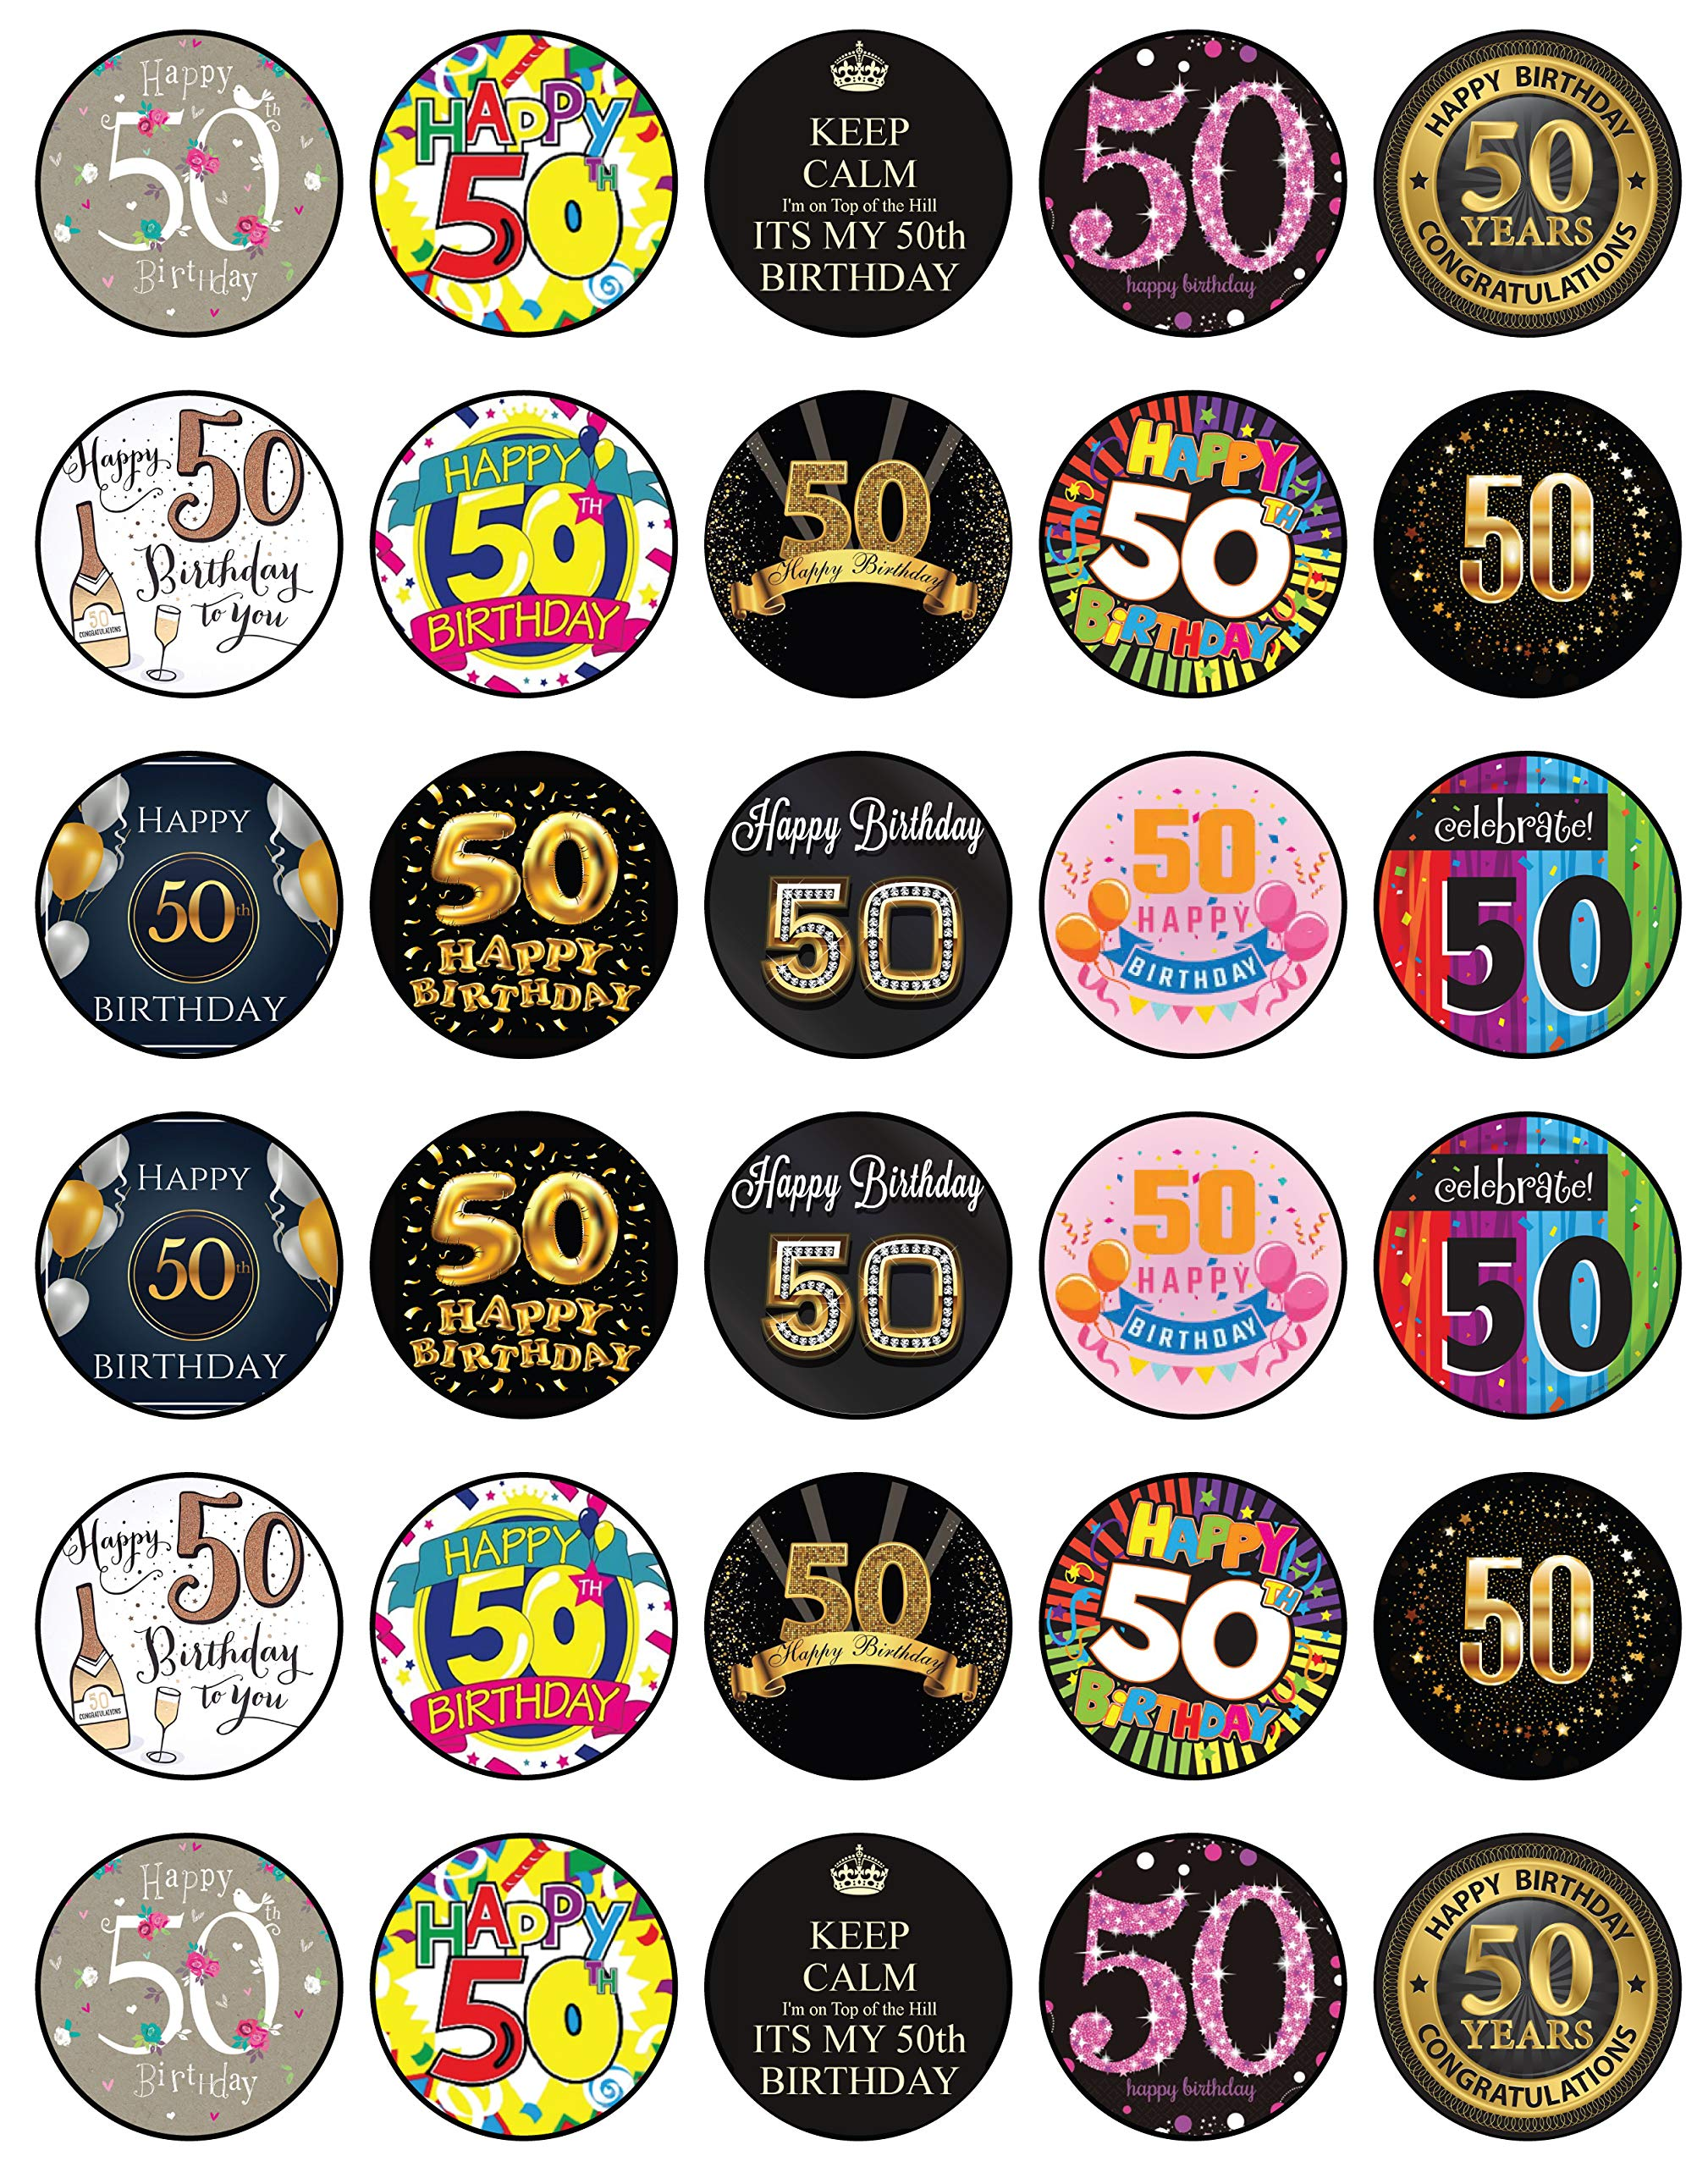 30 x Edible Cupcake Toppers - 50th Birthday Party Collection of Edible Cake Decorations | Uncut Edible Prints on Wafer Sheet